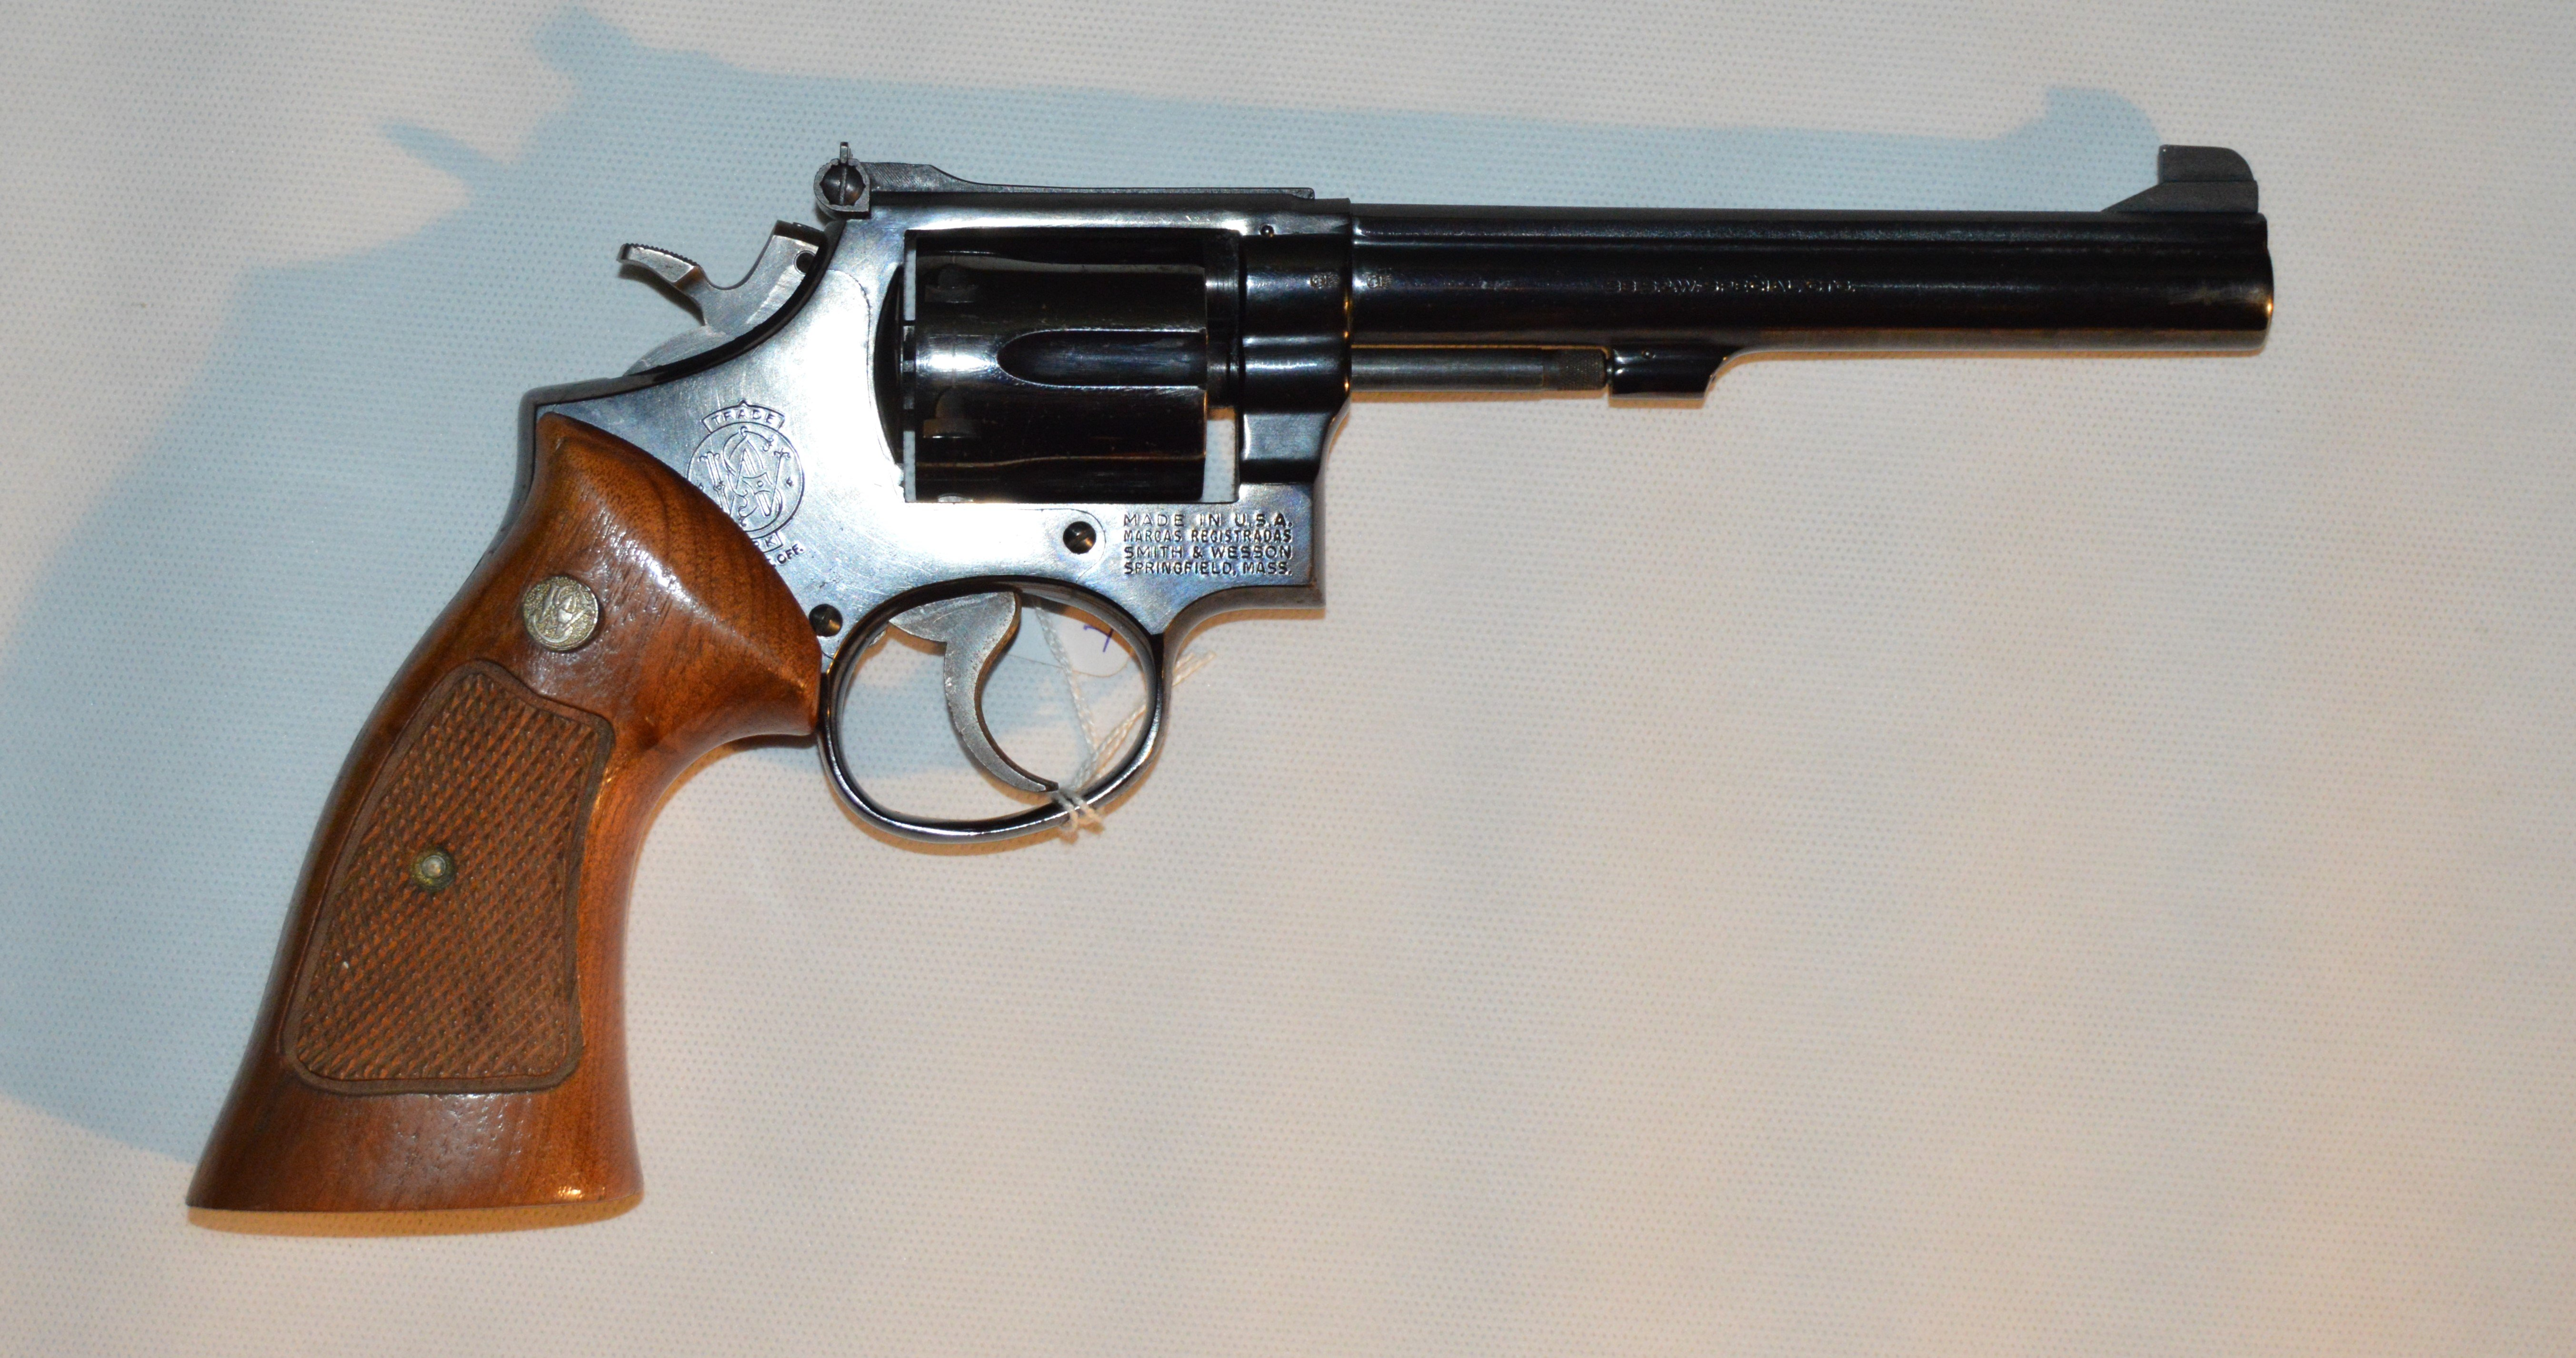 Smith & Wesson Mod. 14 kal. .38 Special